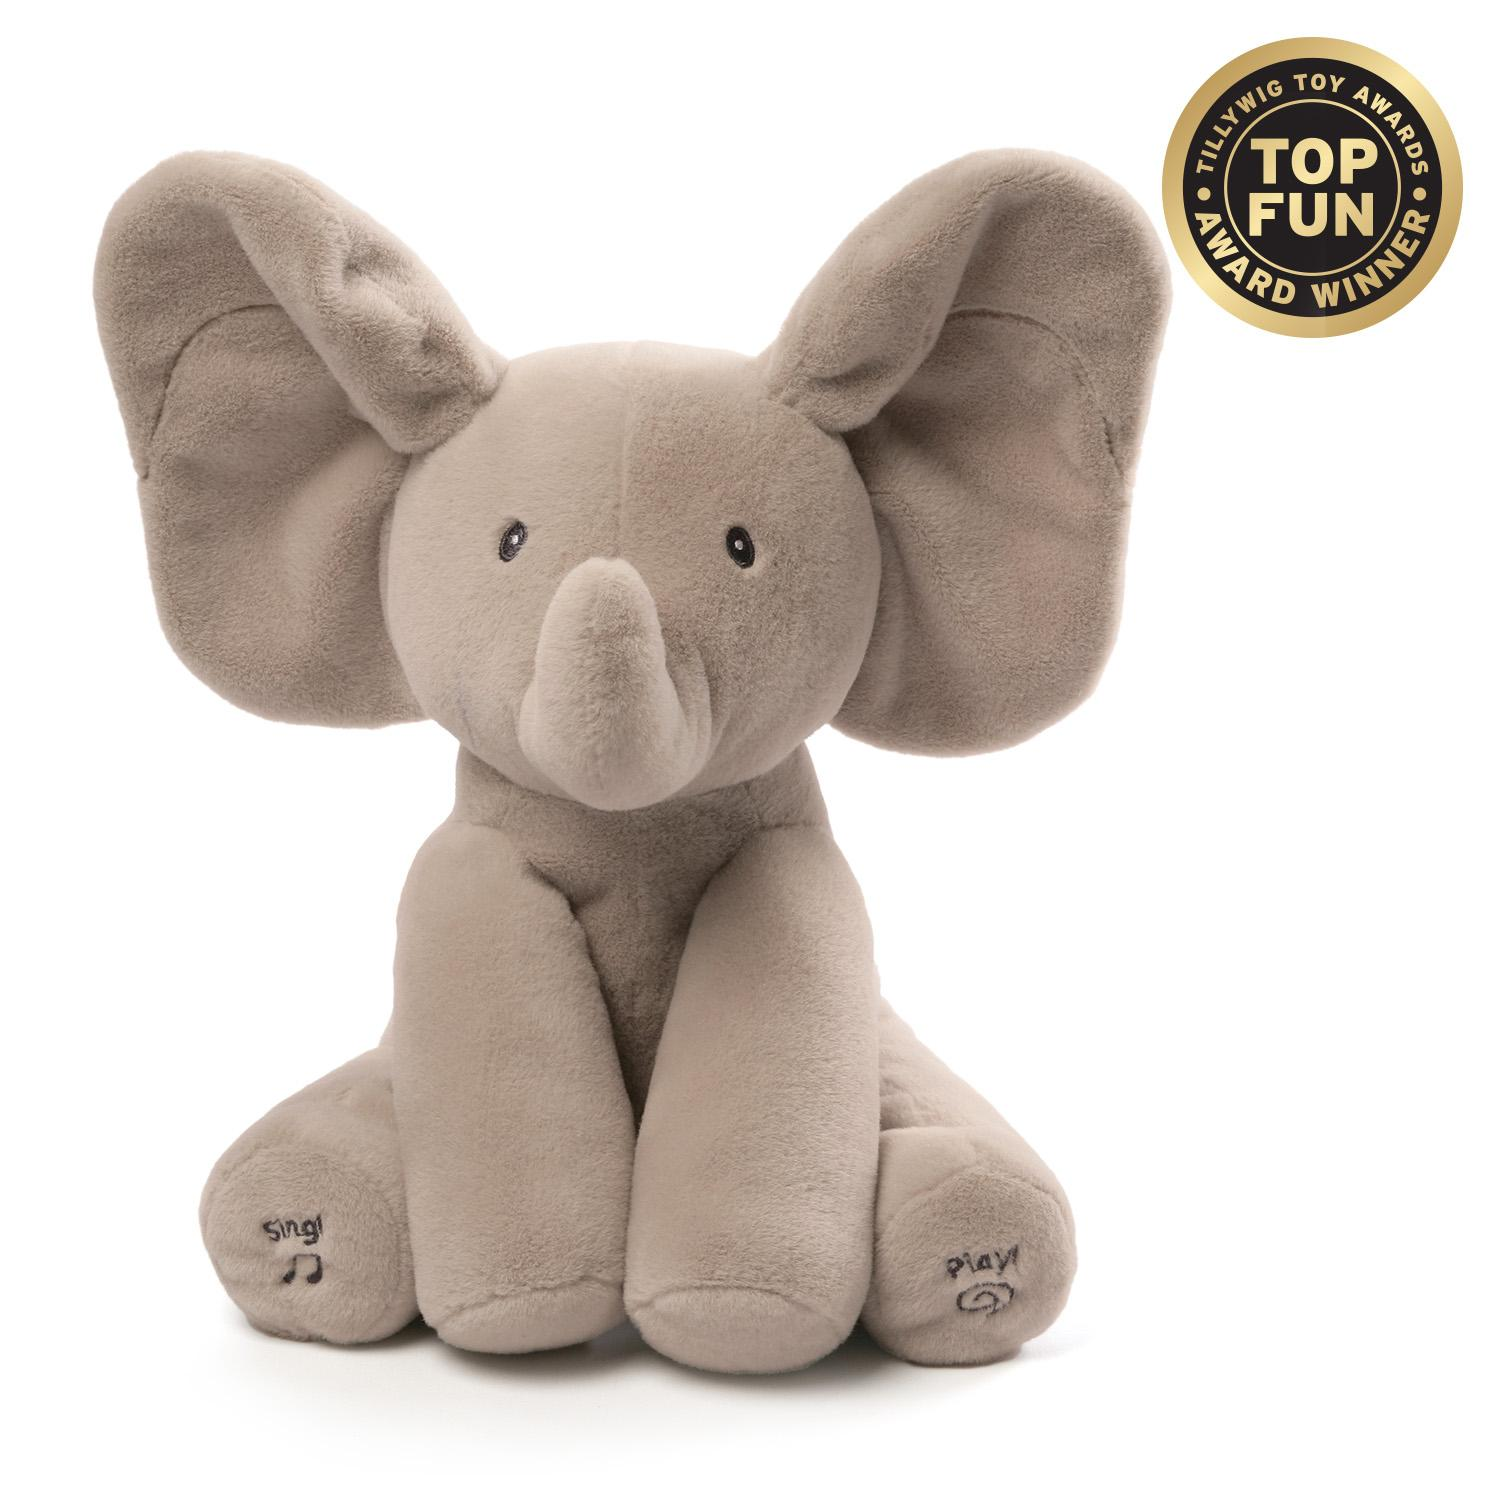 Baby Plush Toys : Gund baby animated flappy the elephant plush toy ebay